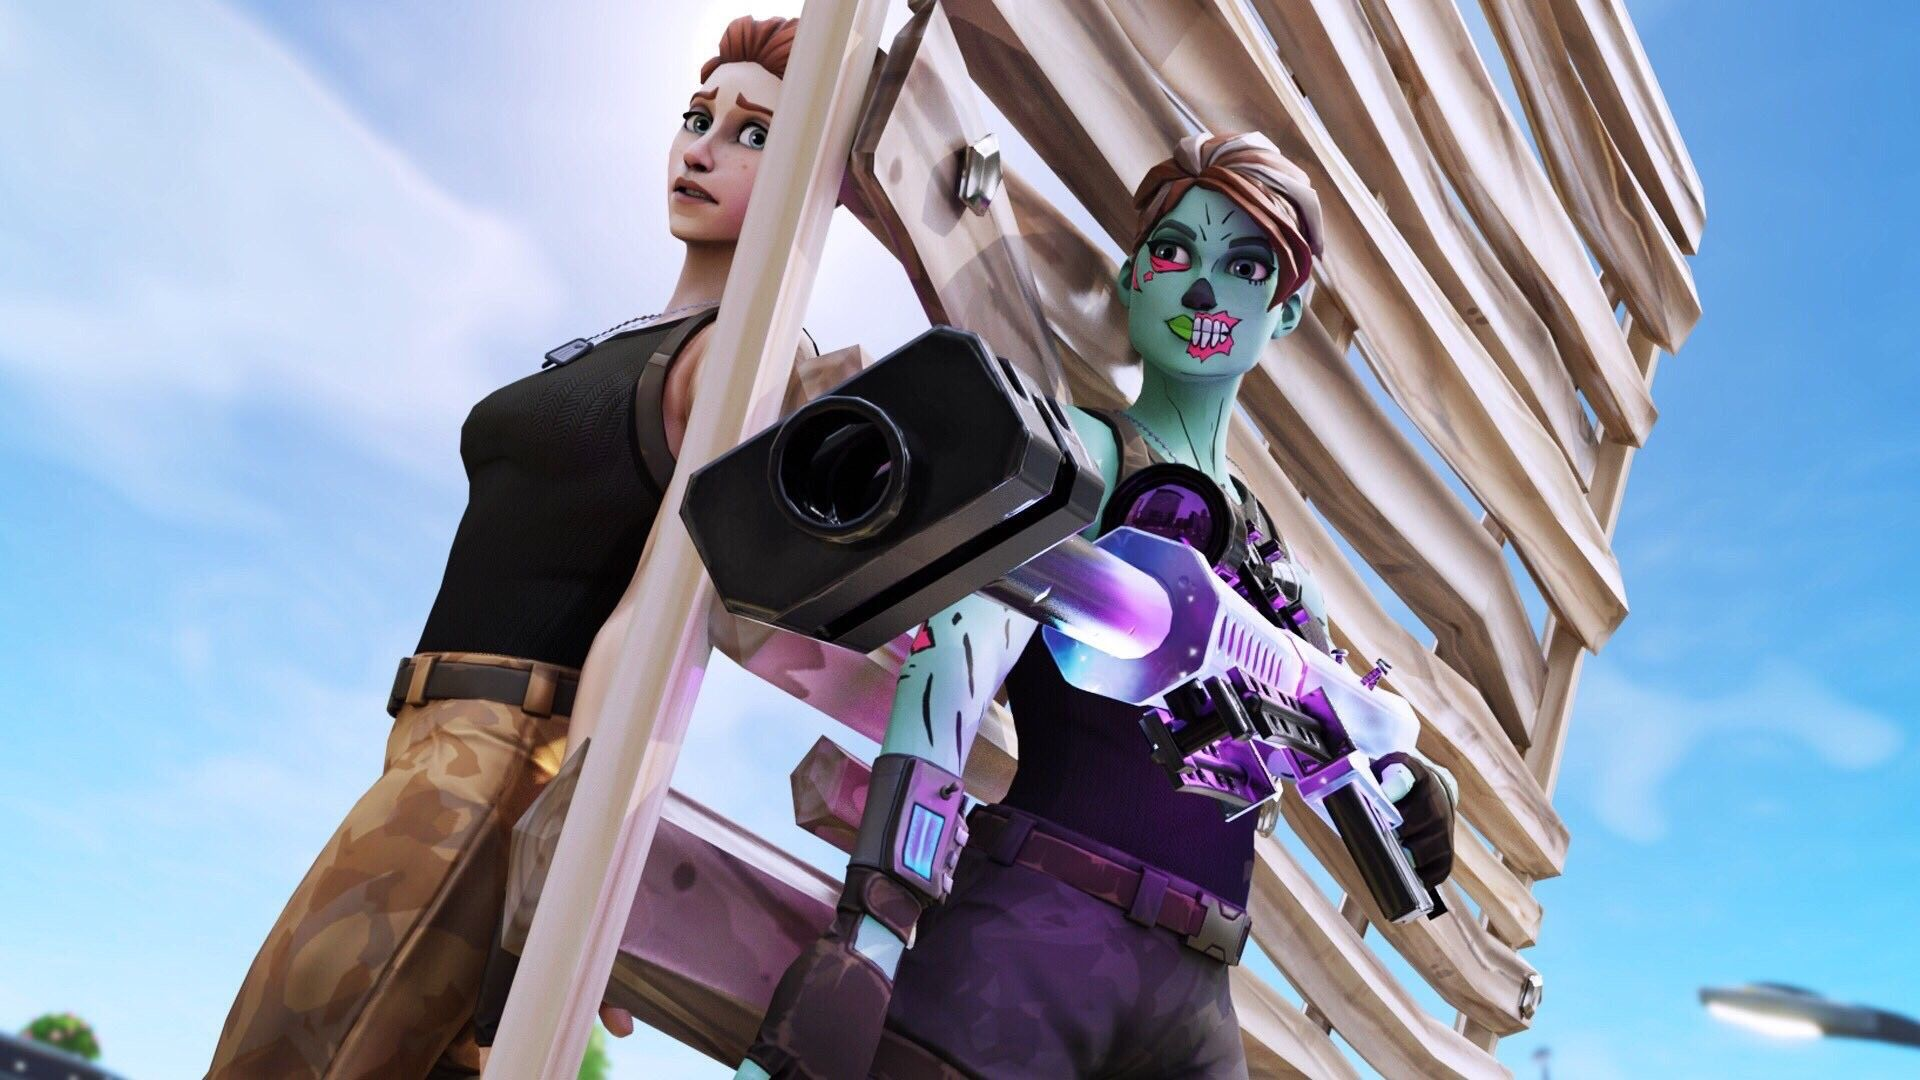 Pin by Just Ghostly on GhosTly thumbnails Ghoul trooper